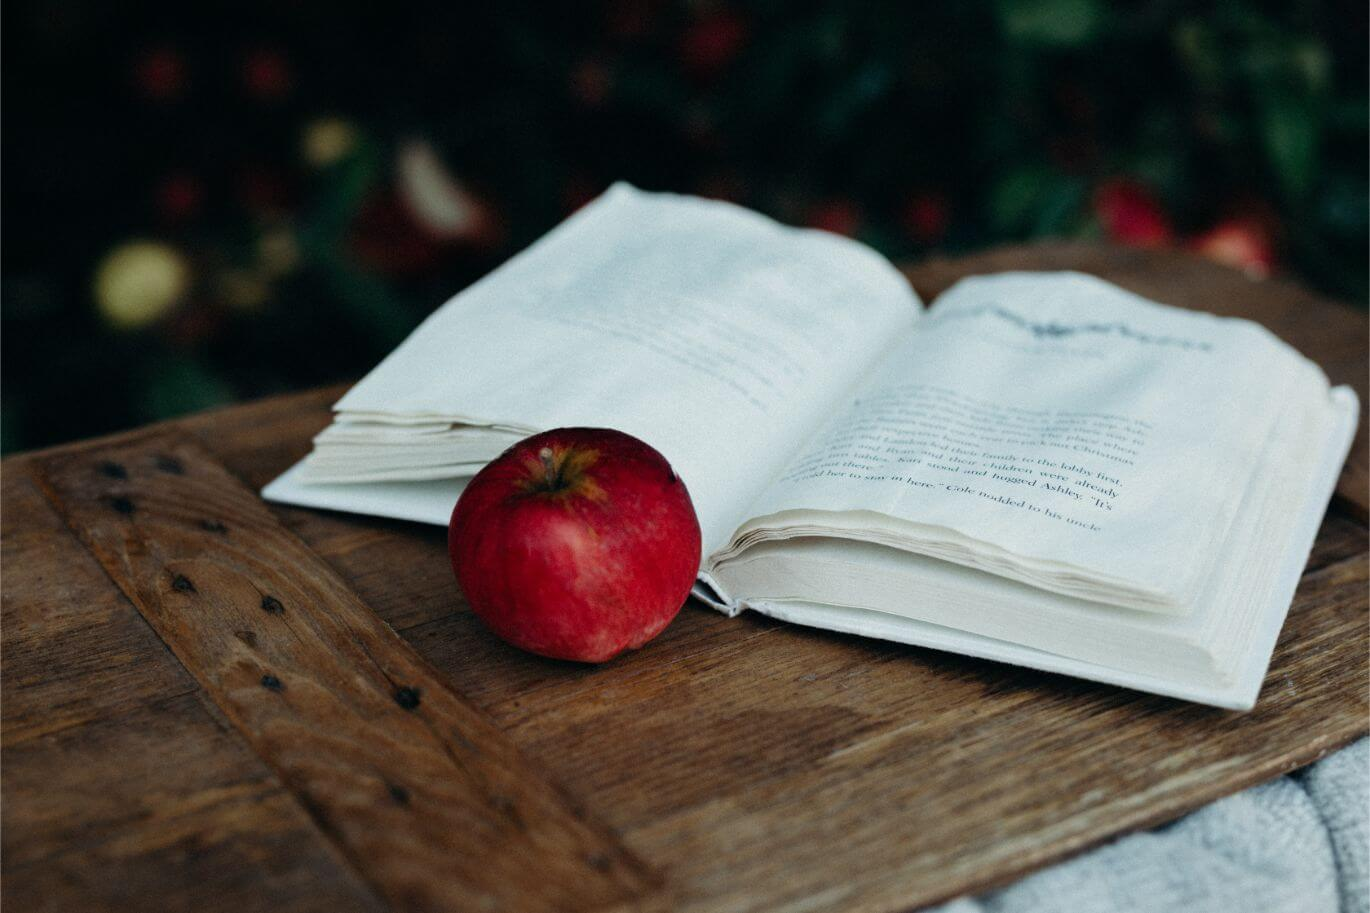 An open book with bedtime stories with a red apple next to it